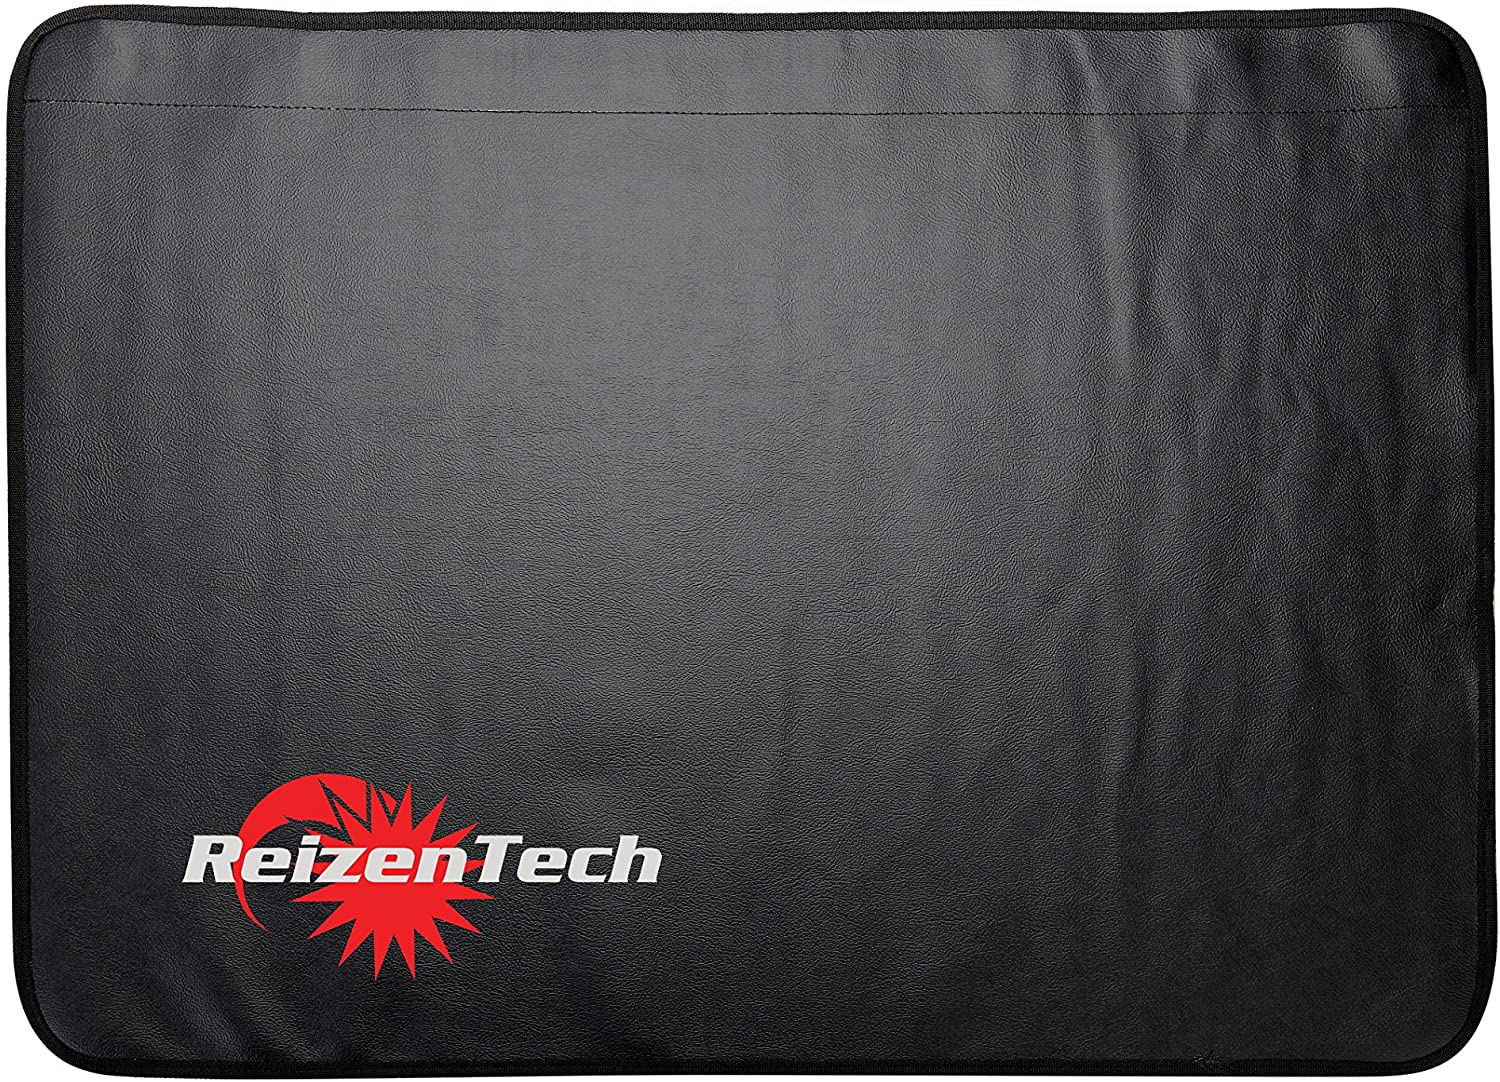 Reizen Tech Professional Magnetic Auto Fender Cover 32 by 24 Inches Thick Car Pad with 8 Strong Magnets, Protective Mat for Repair Automotive Work, Soft Padding for Scratching Prevention